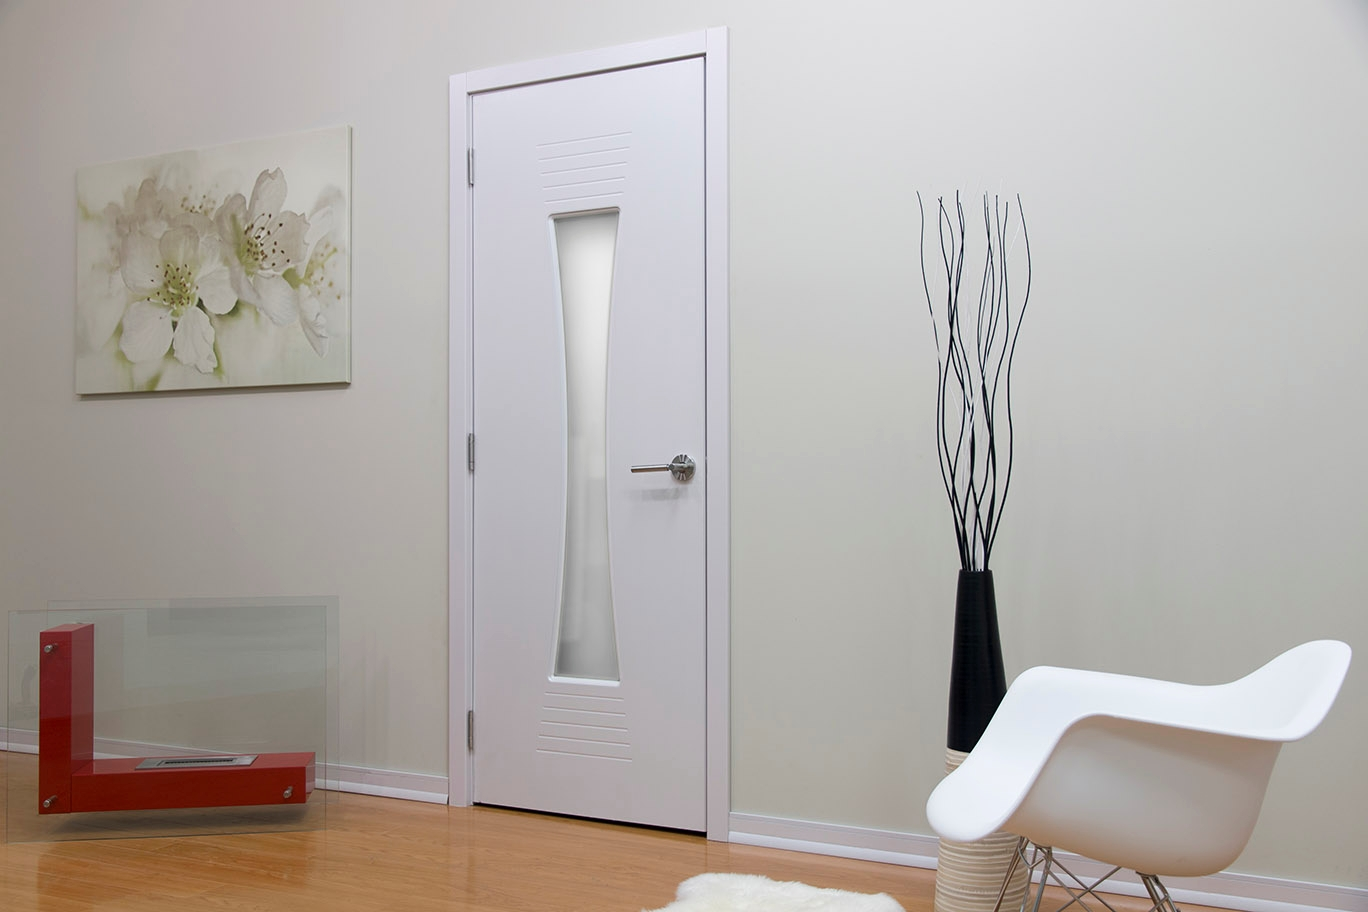 Modern White Interior Doors modern interior doors design. zamp.co